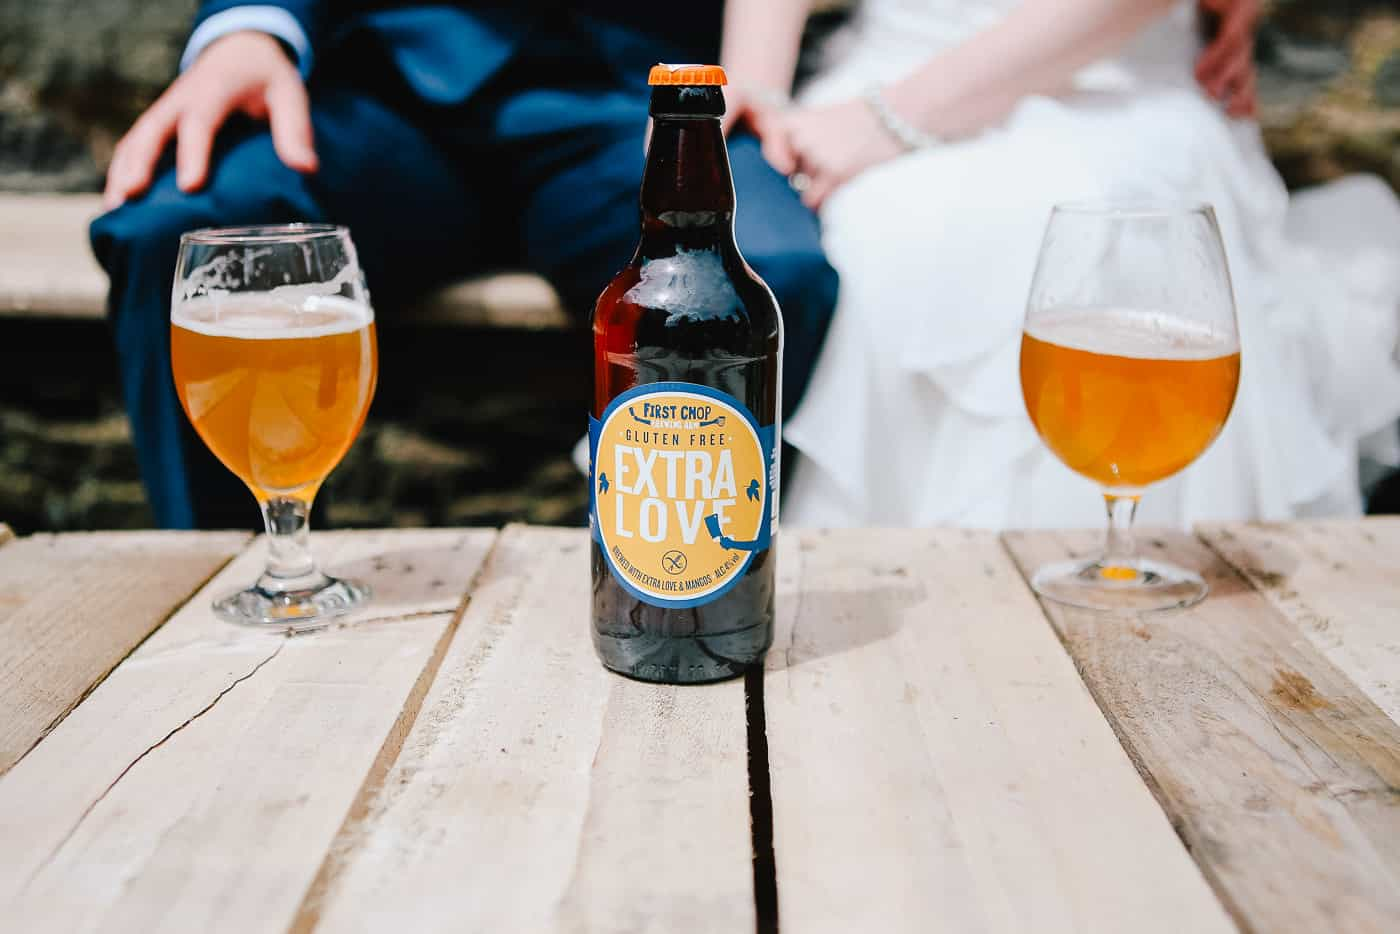 extra love ale bottle